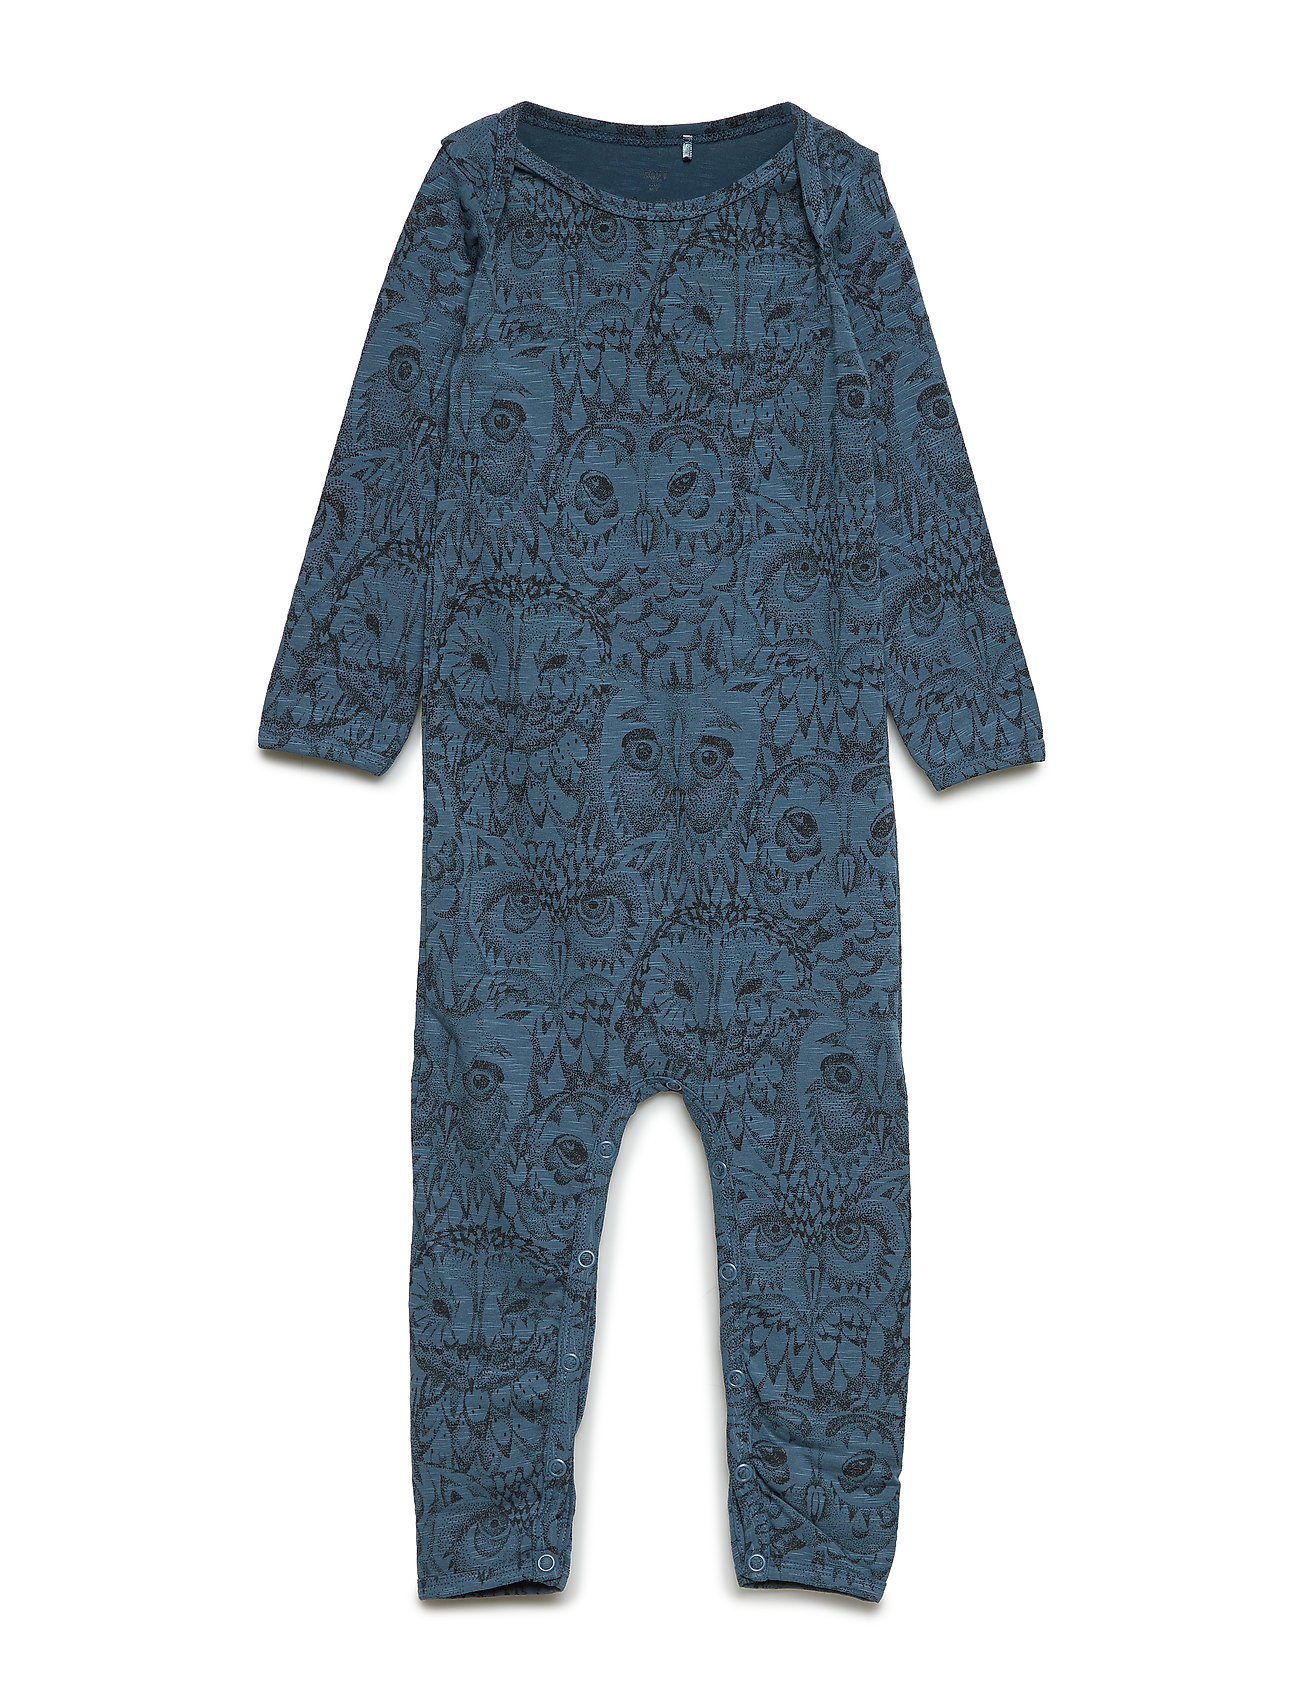 Soft Gallery Ben Bodysuit - ORION BLUE, AOP OWL